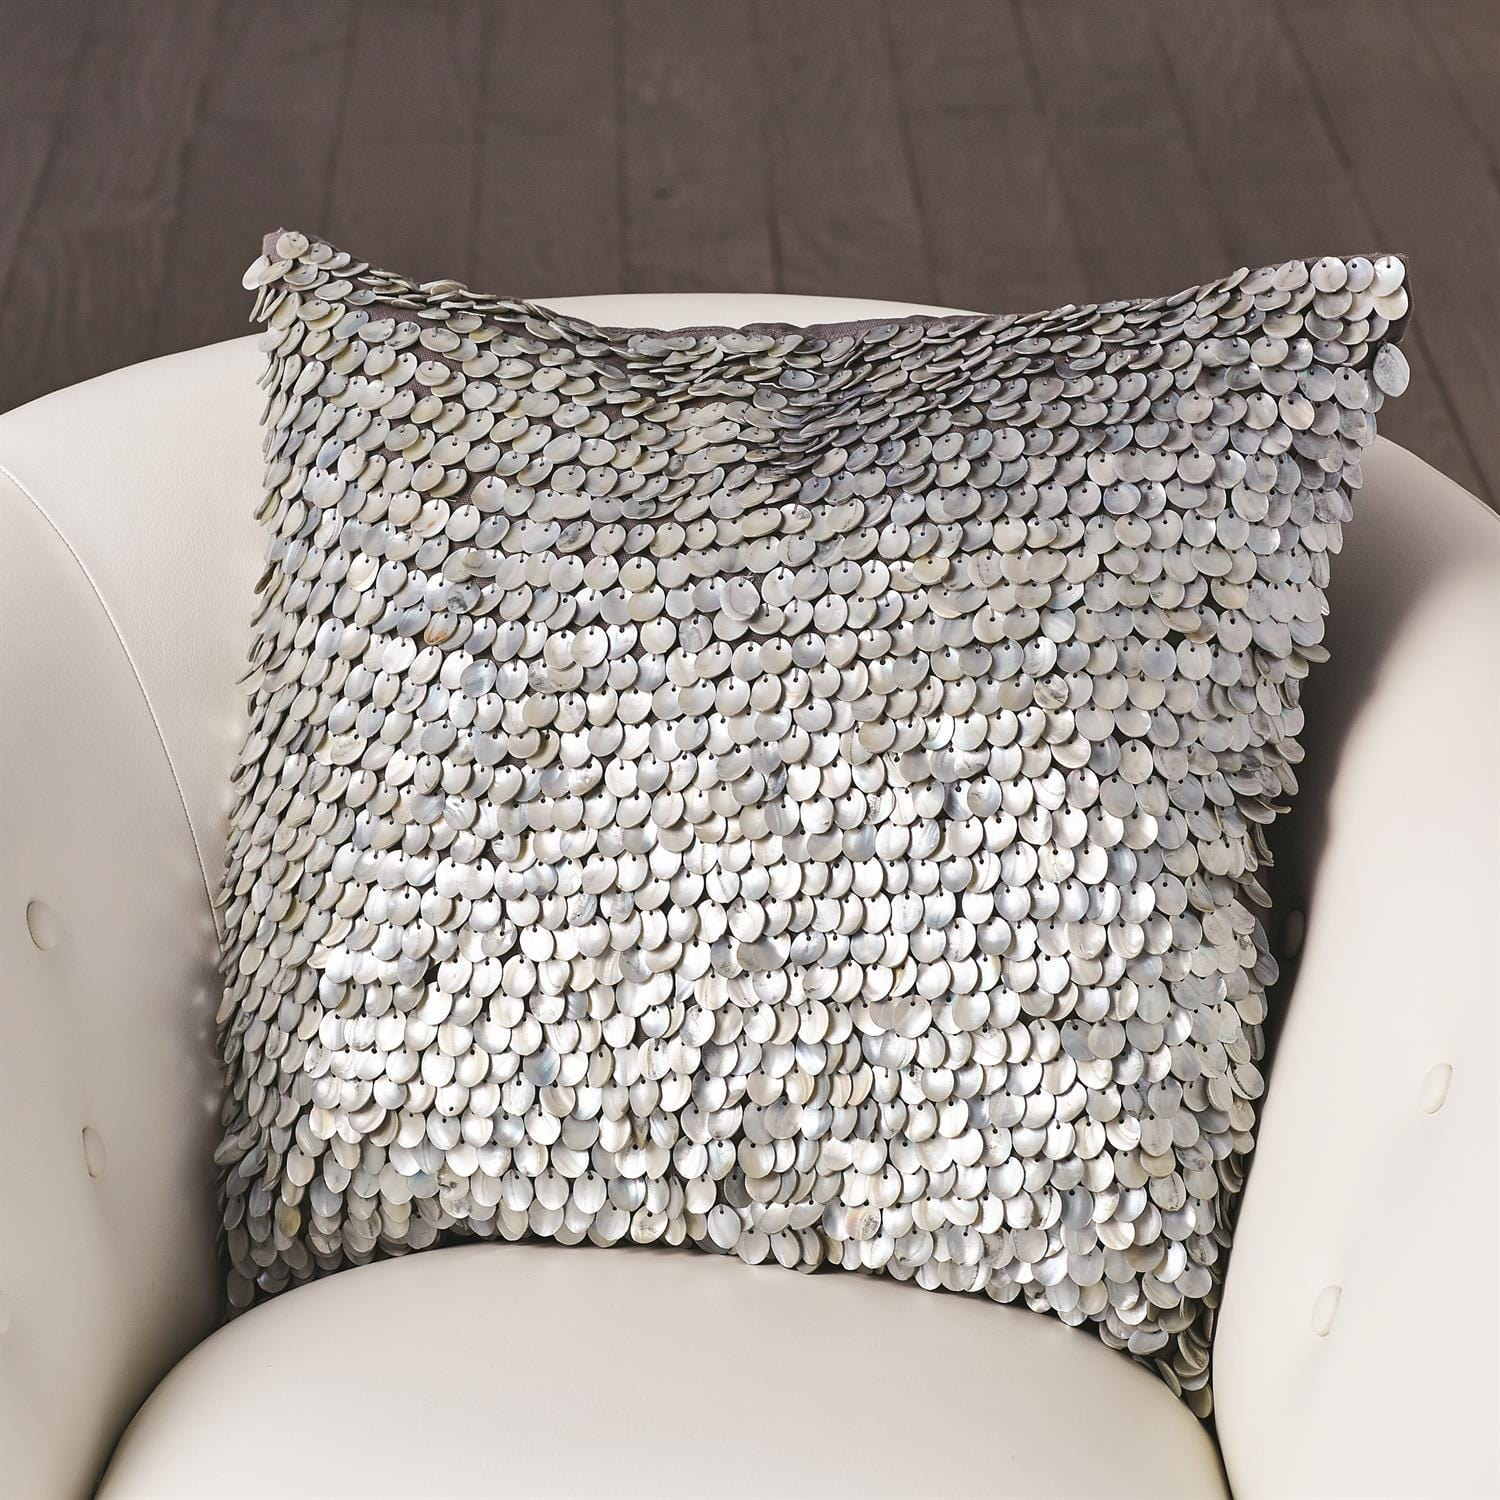 Global Views Global Views Mother of Pearl Beaded Pillow - Grey AS7.90043